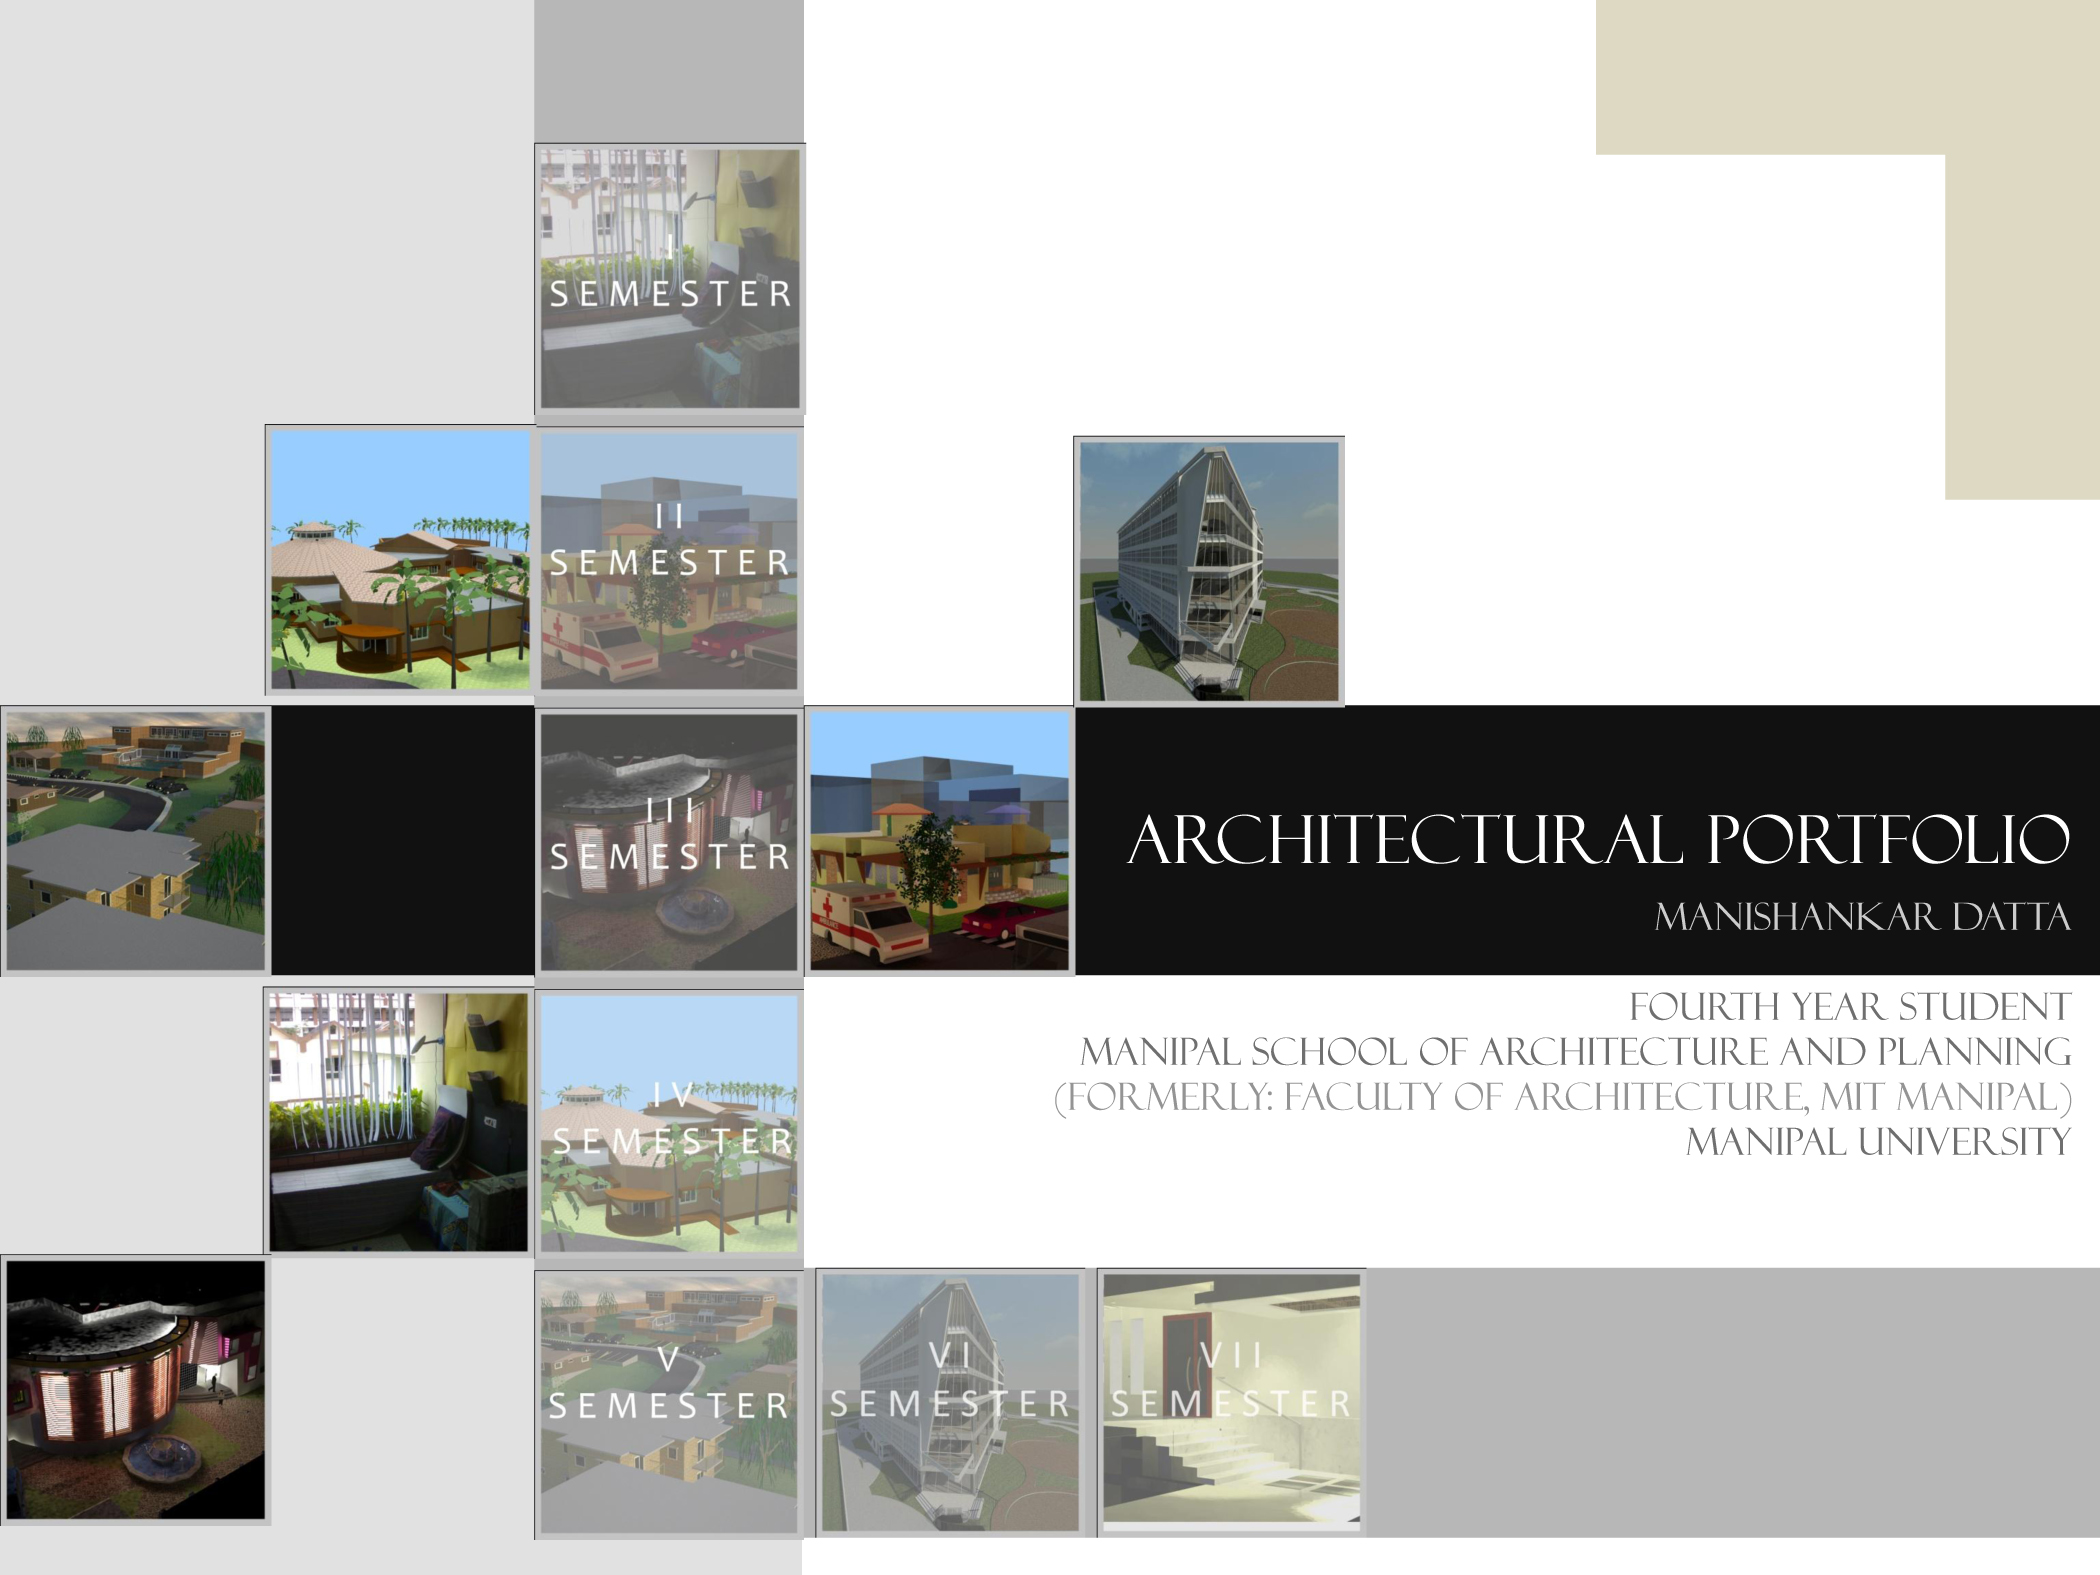 Online Portfolio 2011 By Manishankar Datta At